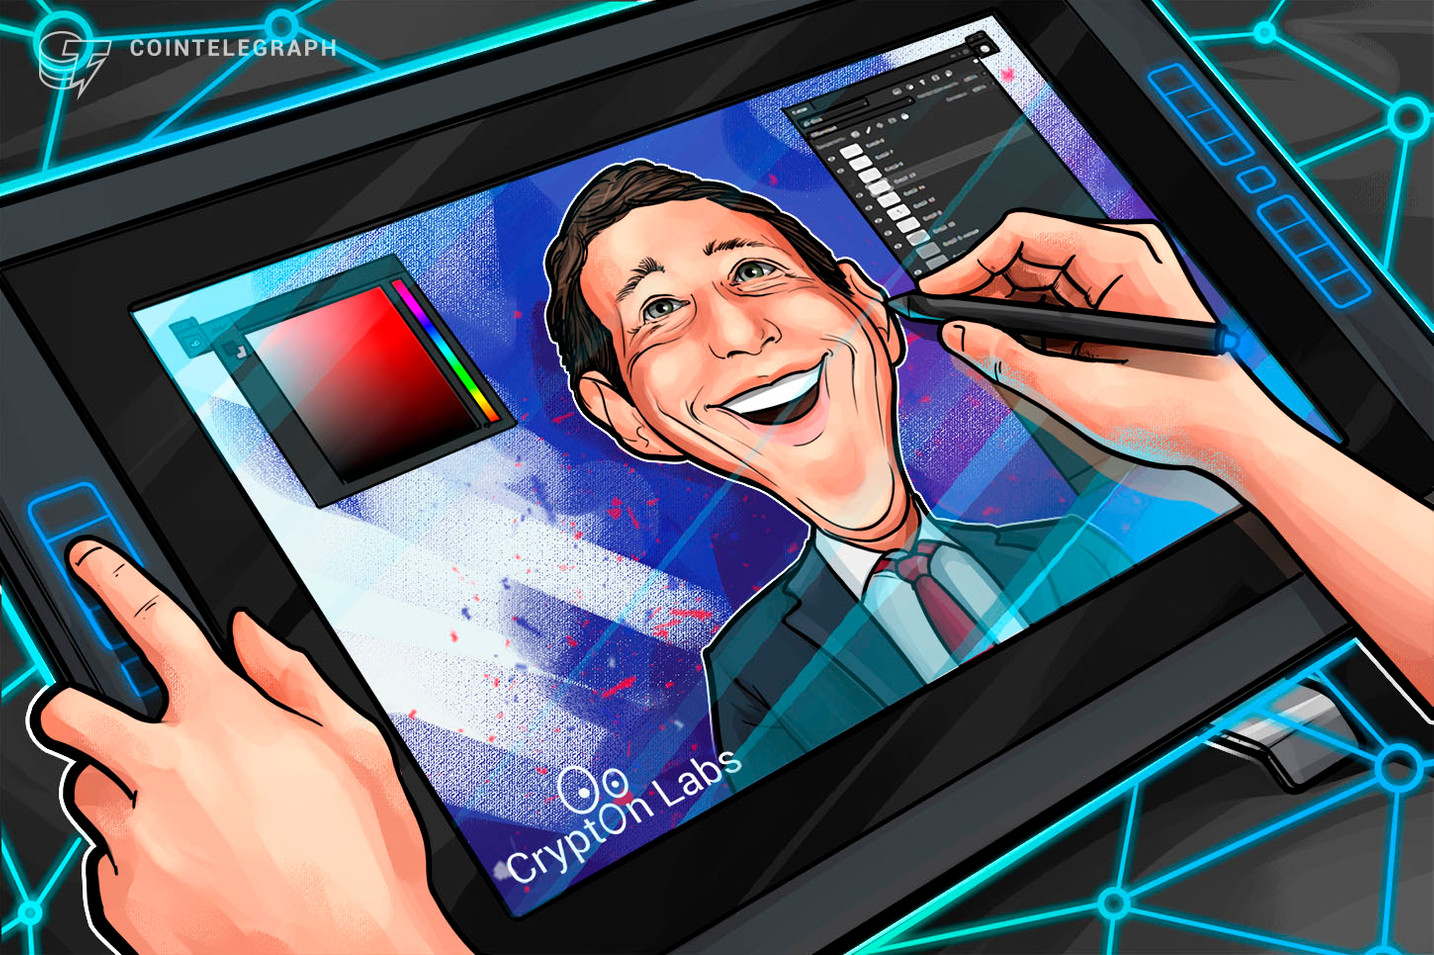 Blockchain Platform Offers Digital Collectibles of World Leaders and Politicians